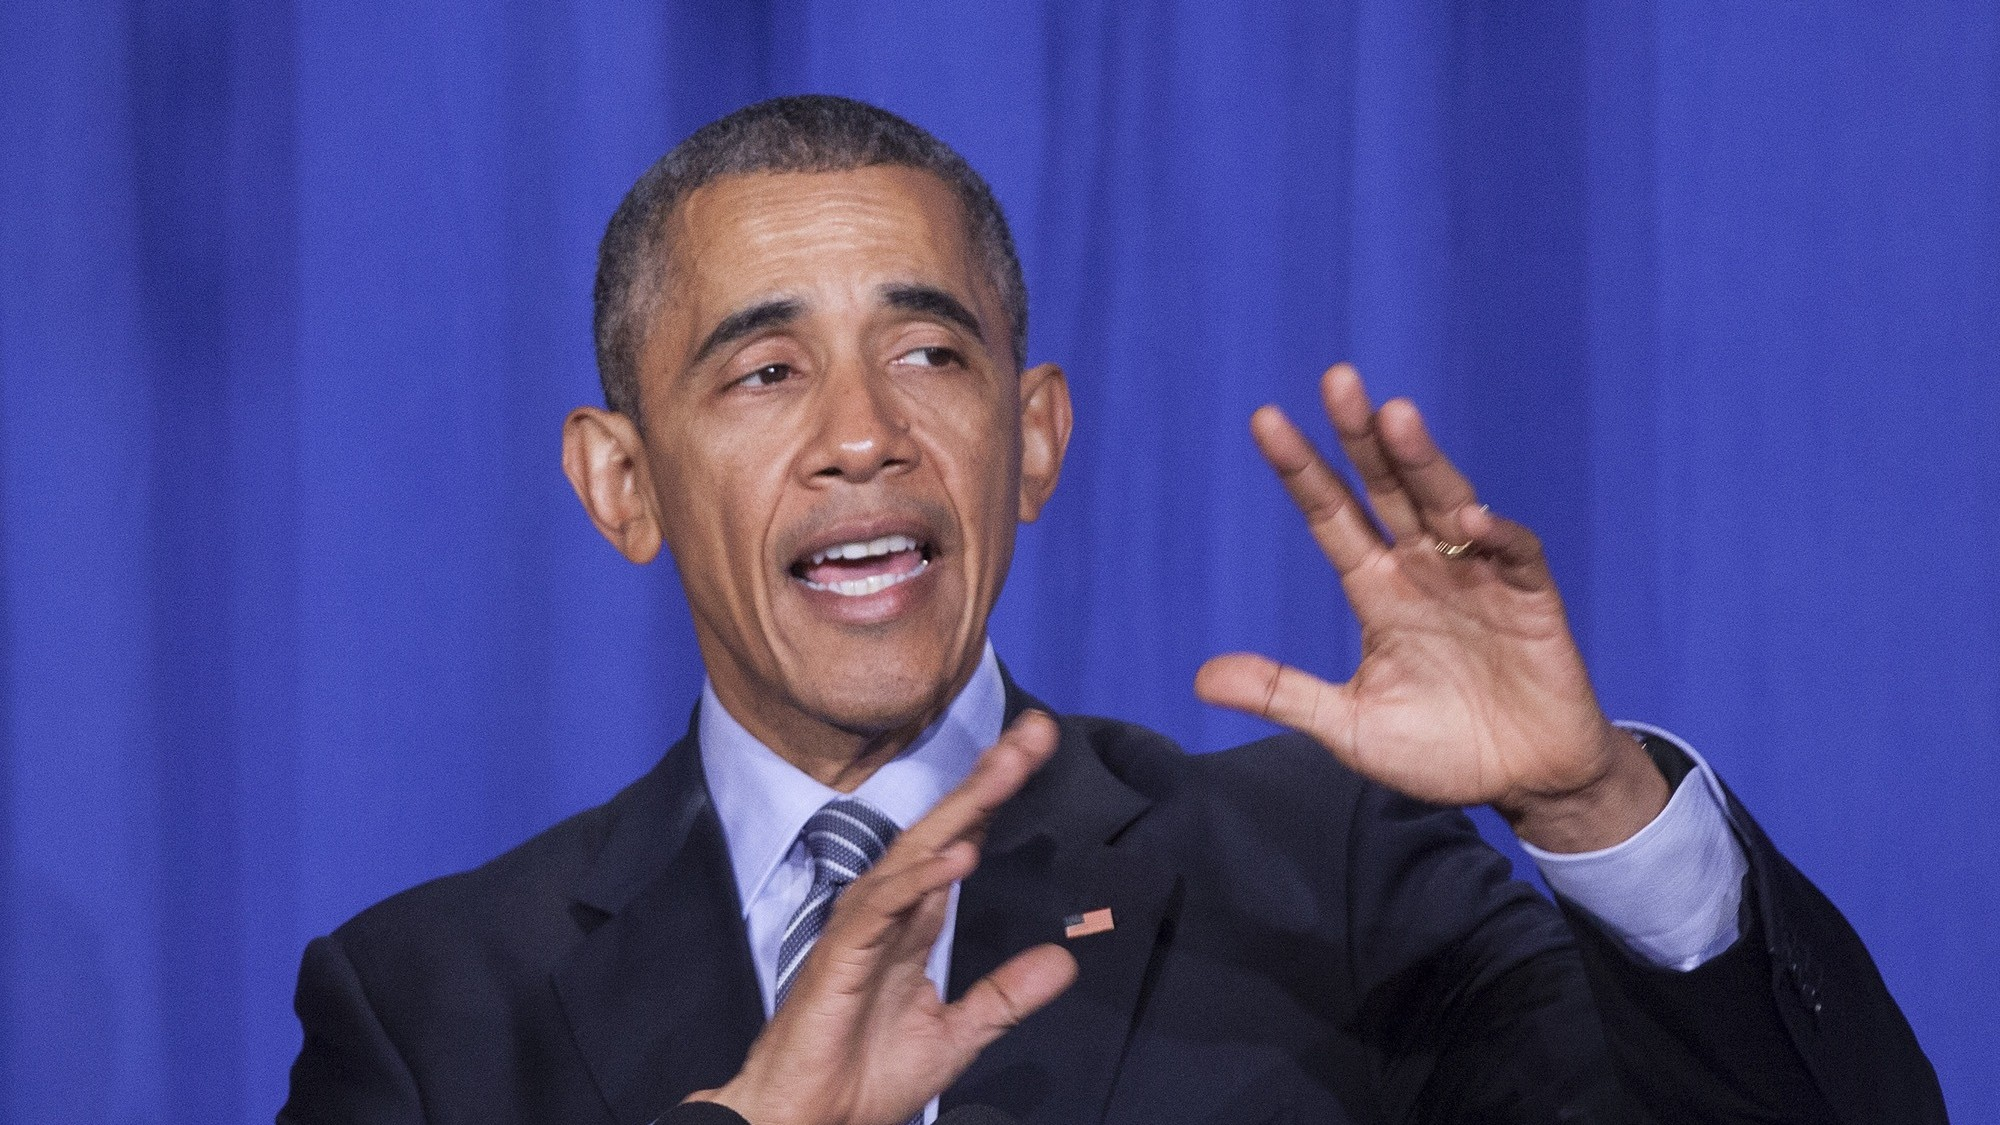 President Obama Wants to Take His Deportation Relief Fight to the Supreme Court